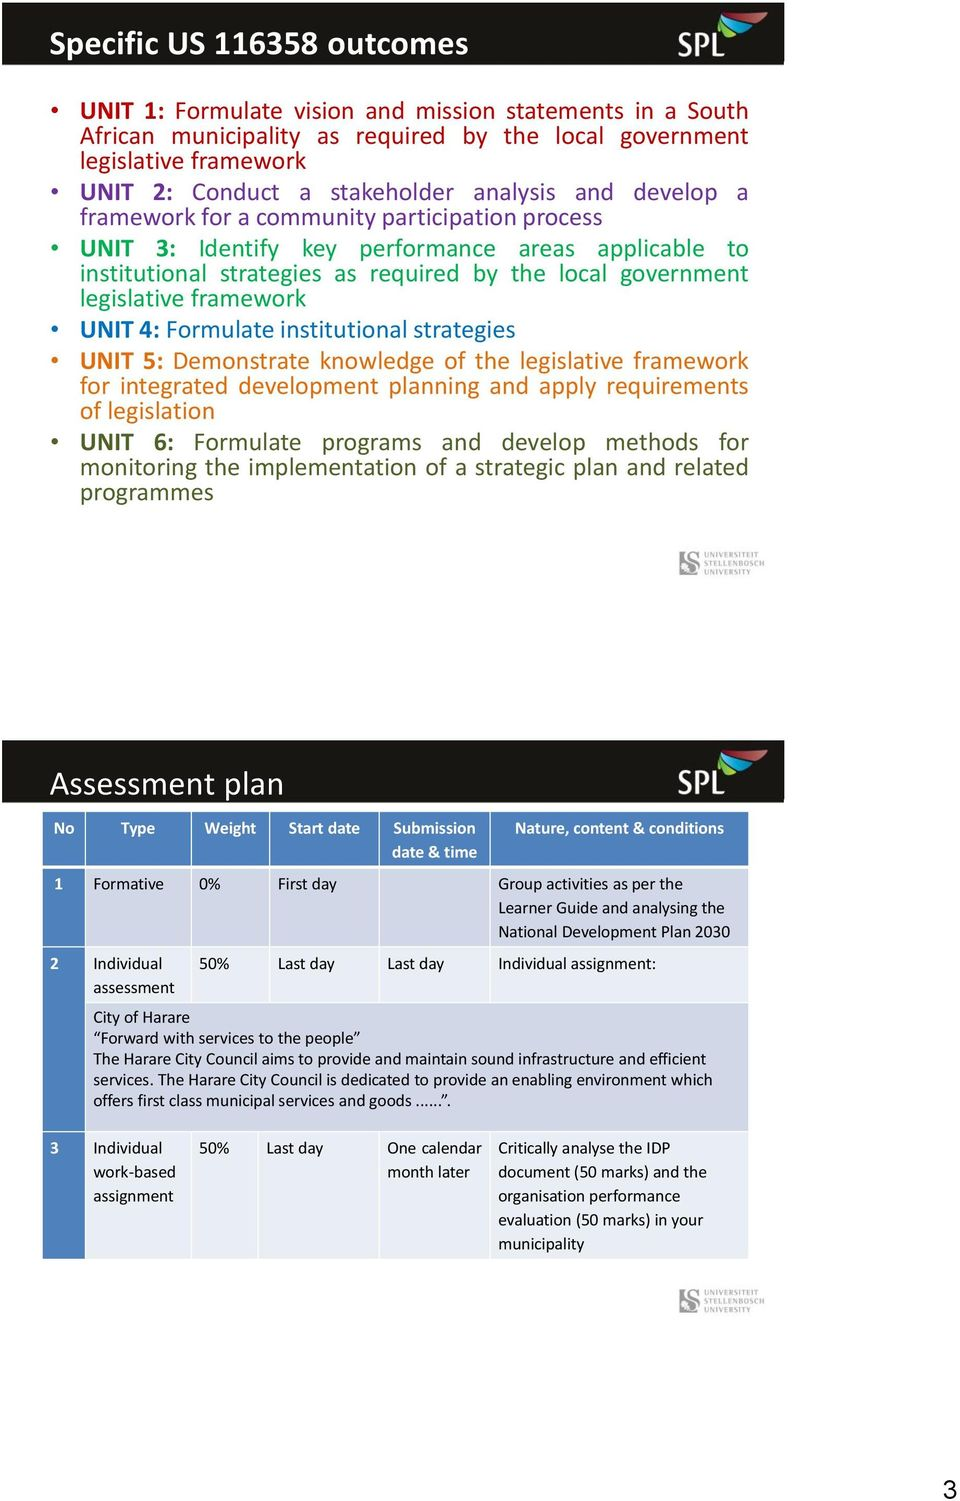 research proposal methodology section example  example research proposal section methodology